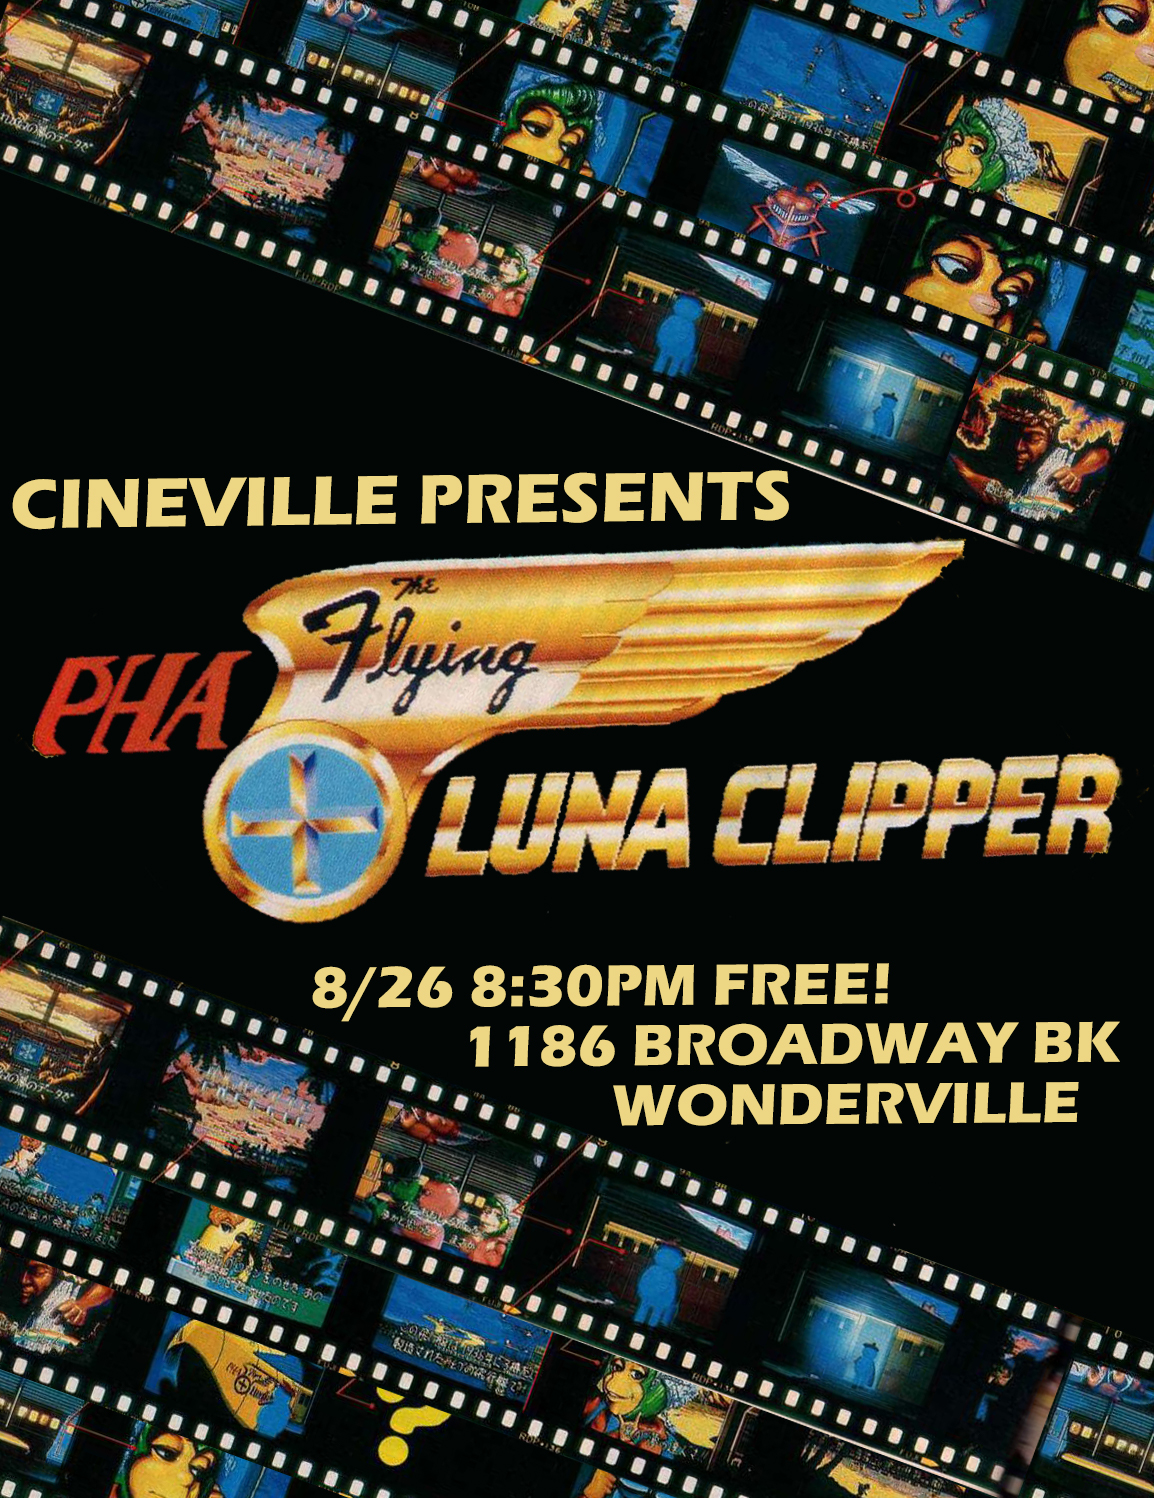 RSVP:  https://withfriends.co/Event/2417045/Cineville_Presents_The_Flying_Luna_Clipper